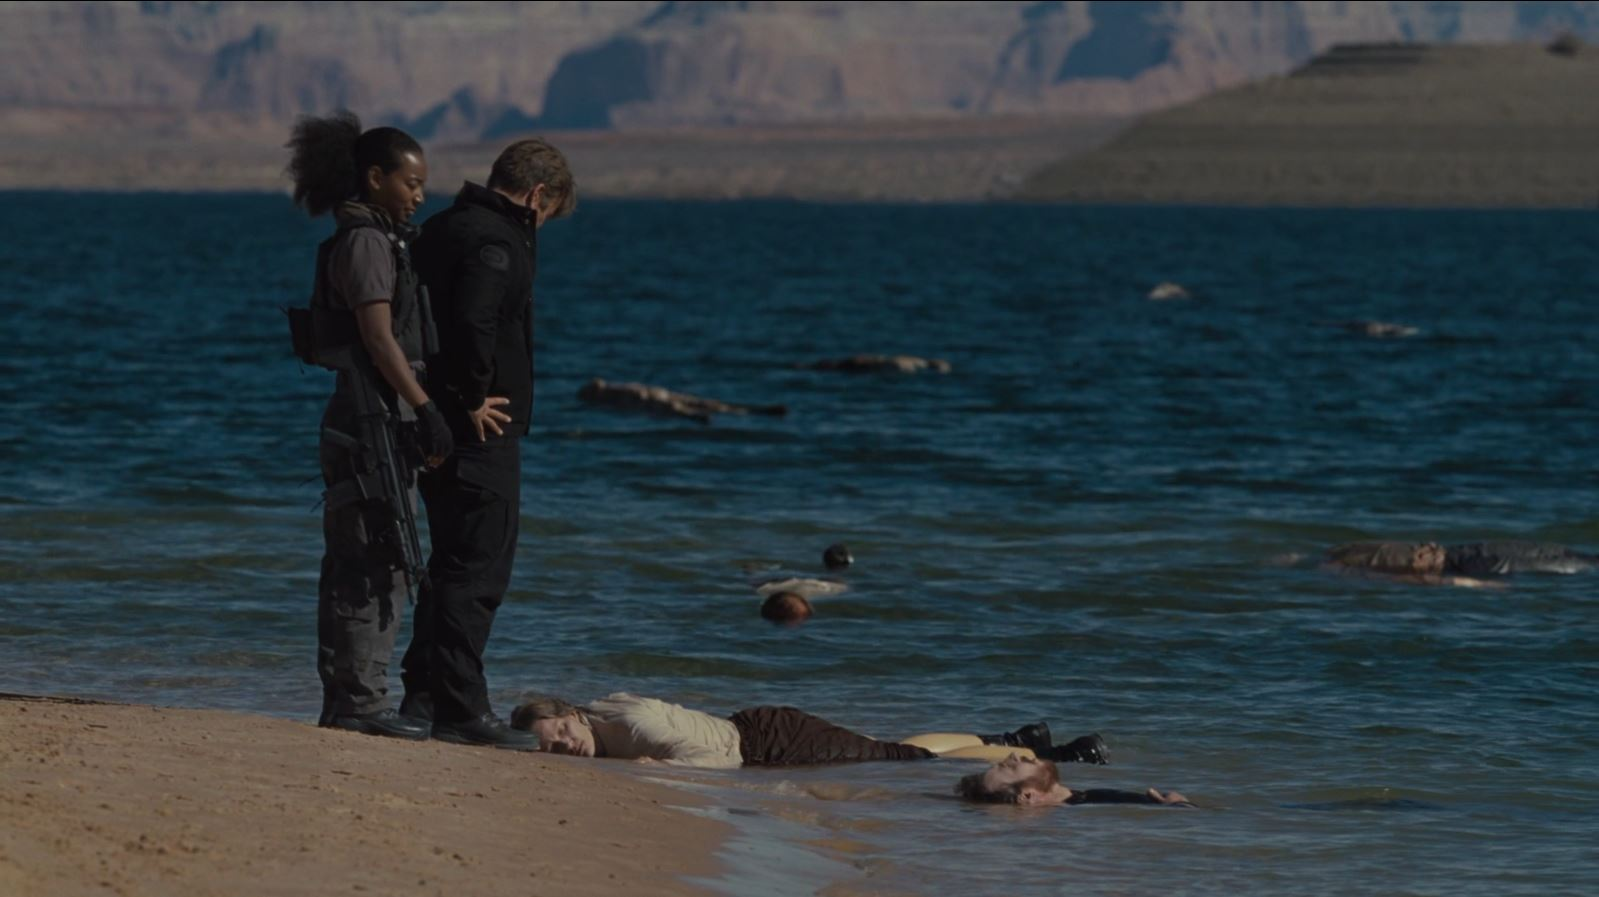 Westworld S02E01 Journey into Night Review - Dead hosts in the lake